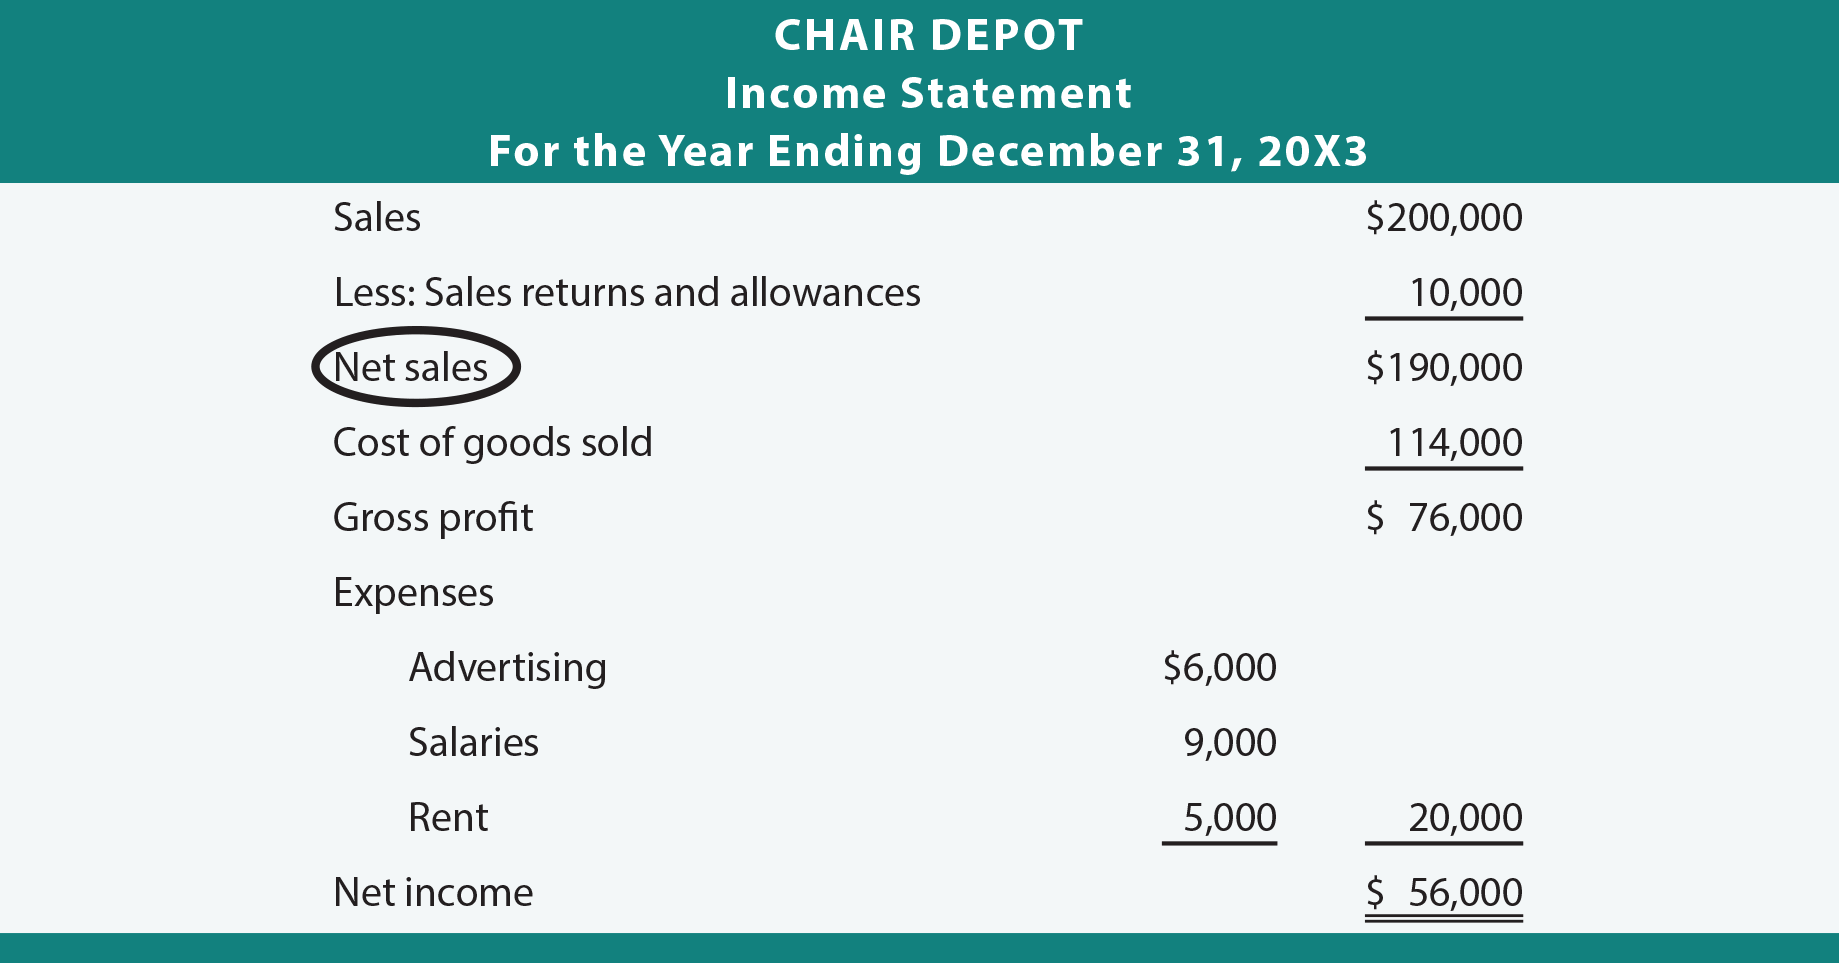 Chair Depot Income Statement